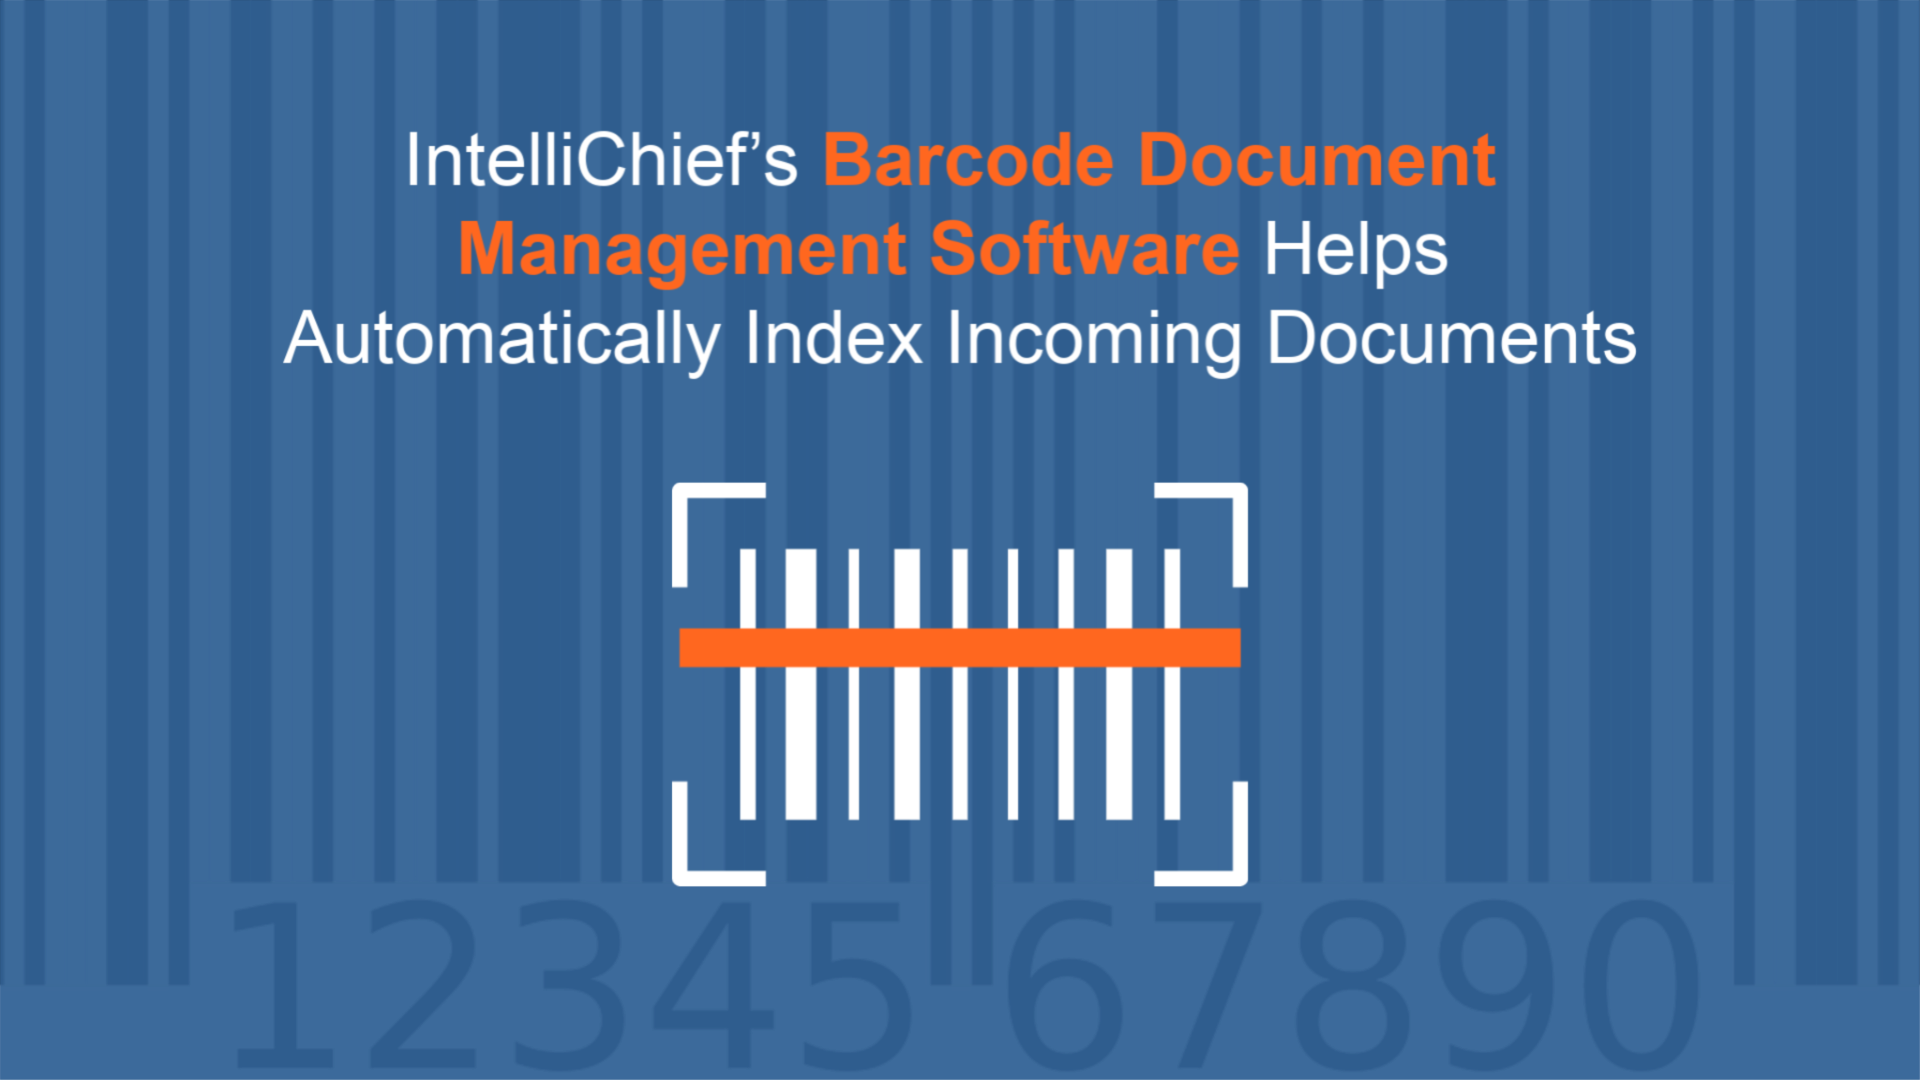 Barcode Document Management Software